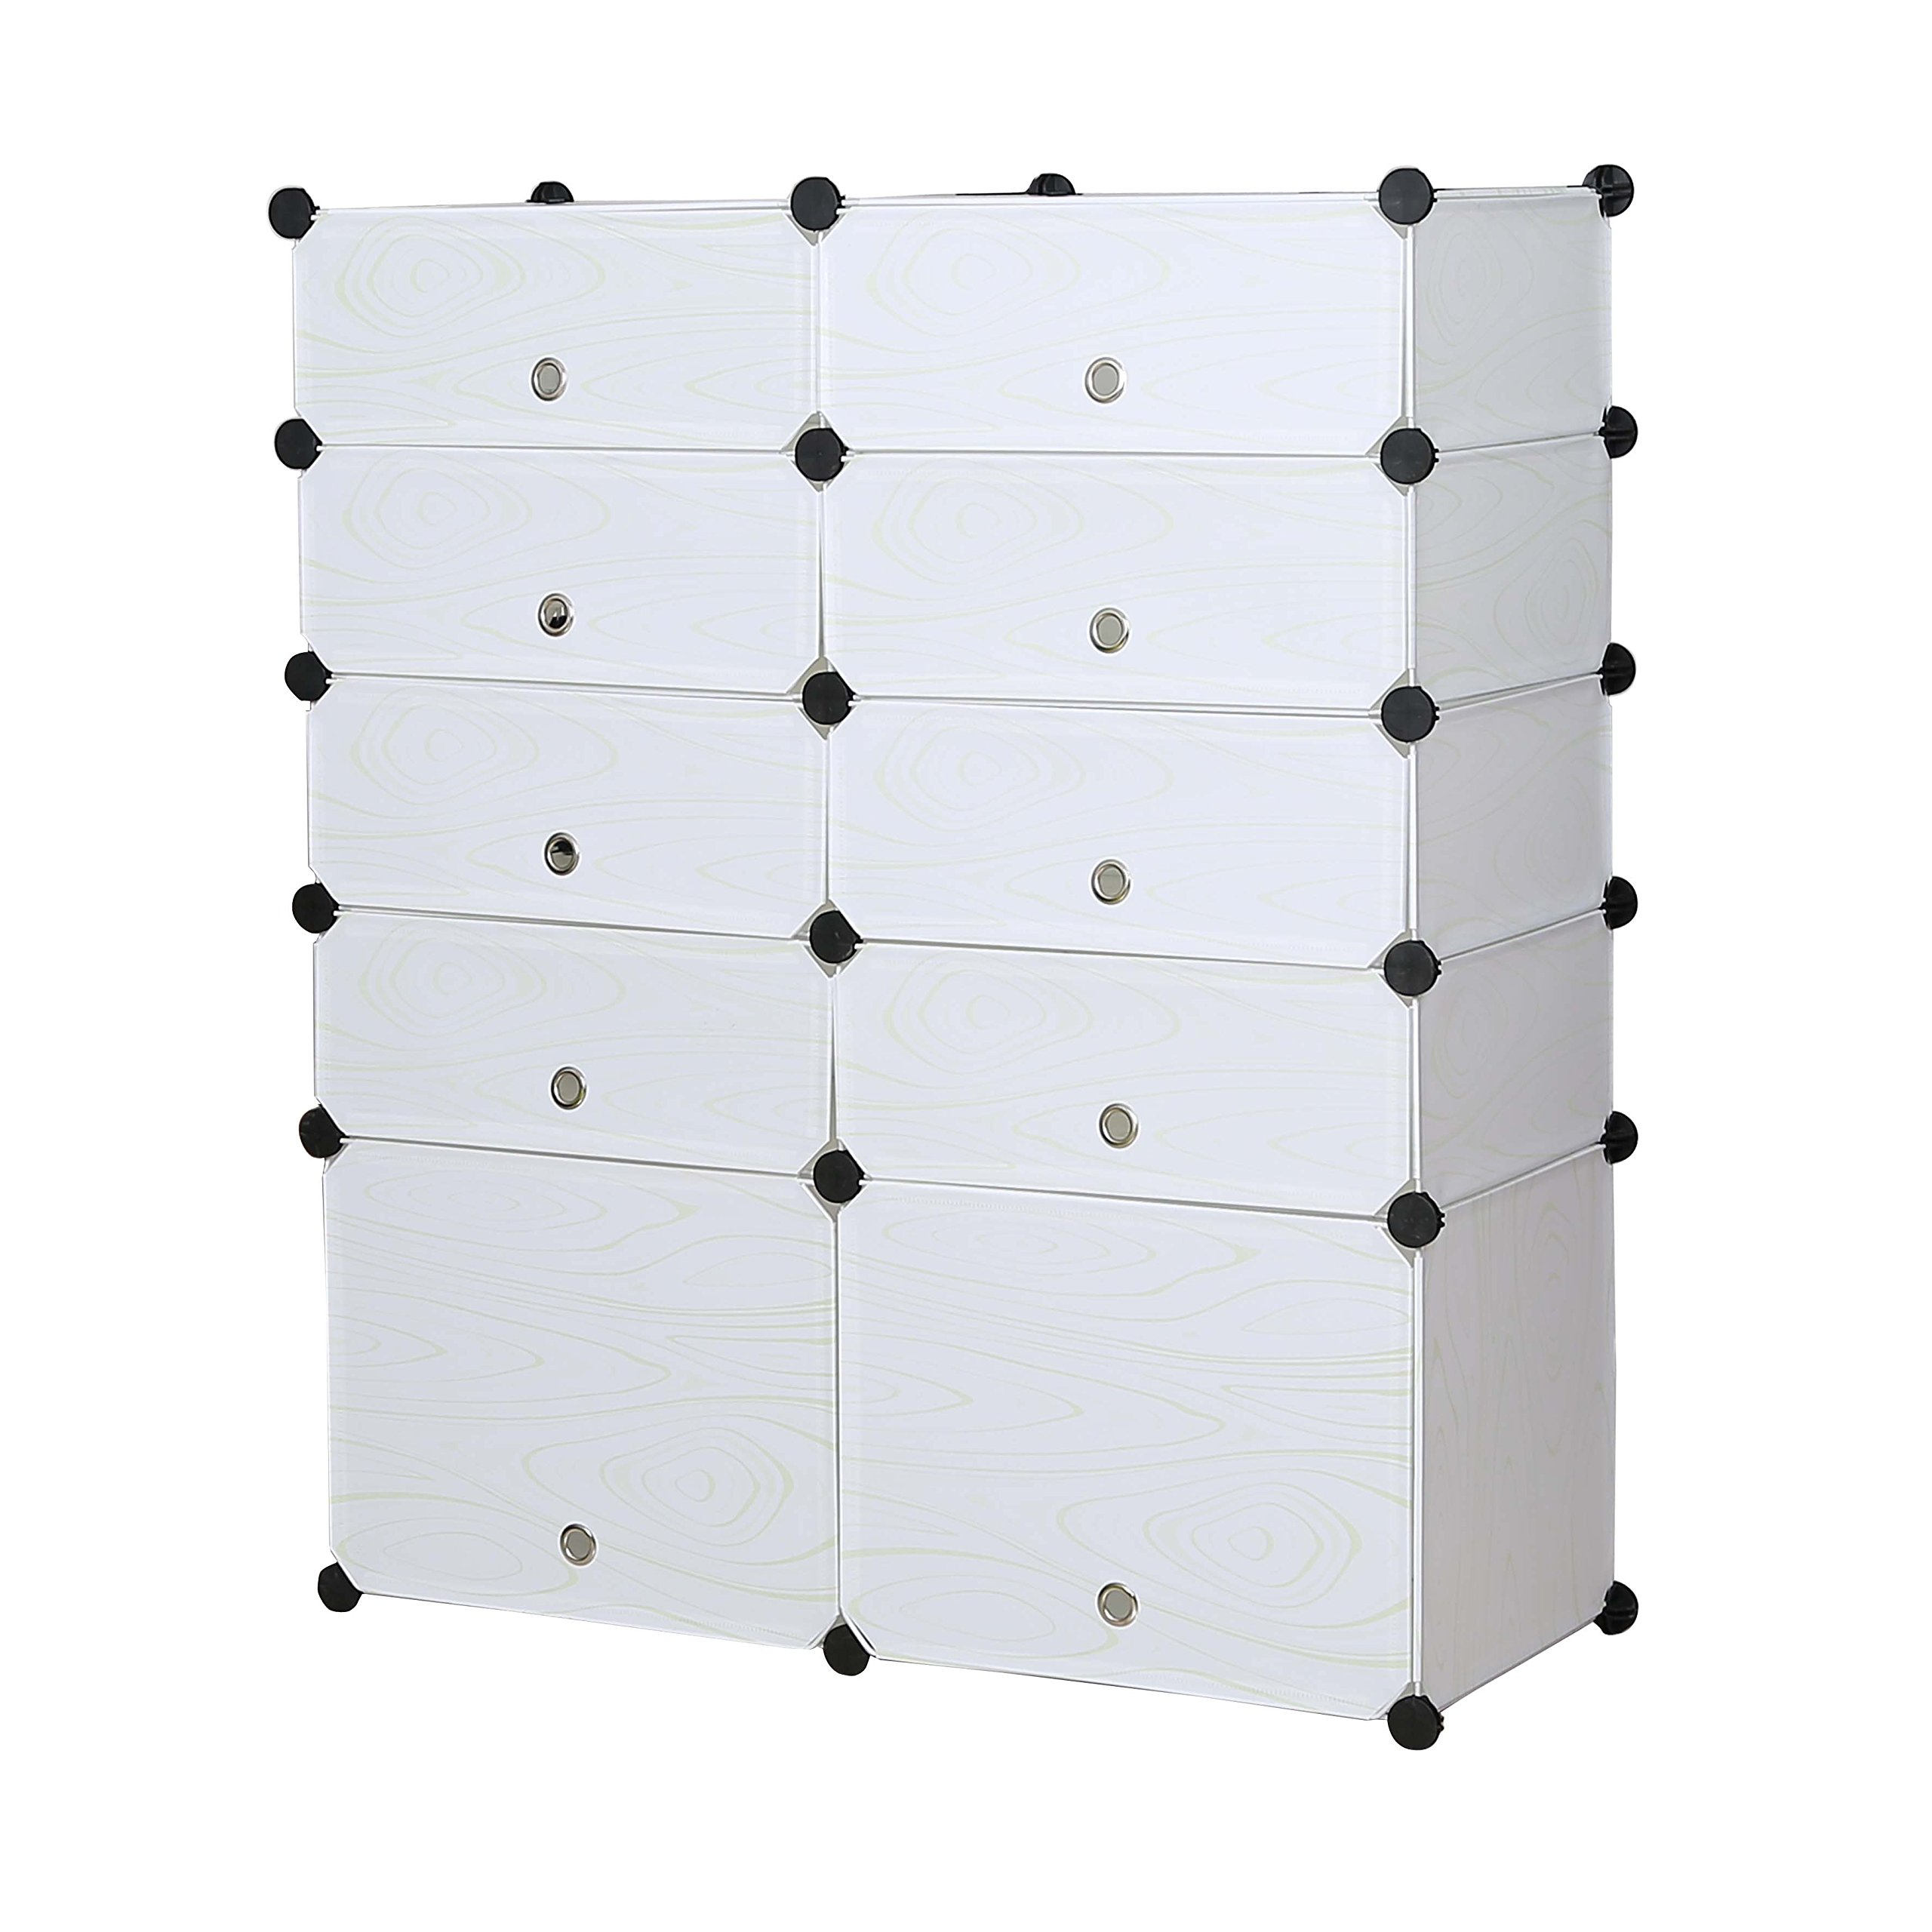 UNICOO - Multi Use DIY Plastic 10 Cube Shoe Rack,Organizer, Bookcase, Shoes Cabinet (25 With Boots Cube, White Wood Grain) by UNICOO (Image #5)